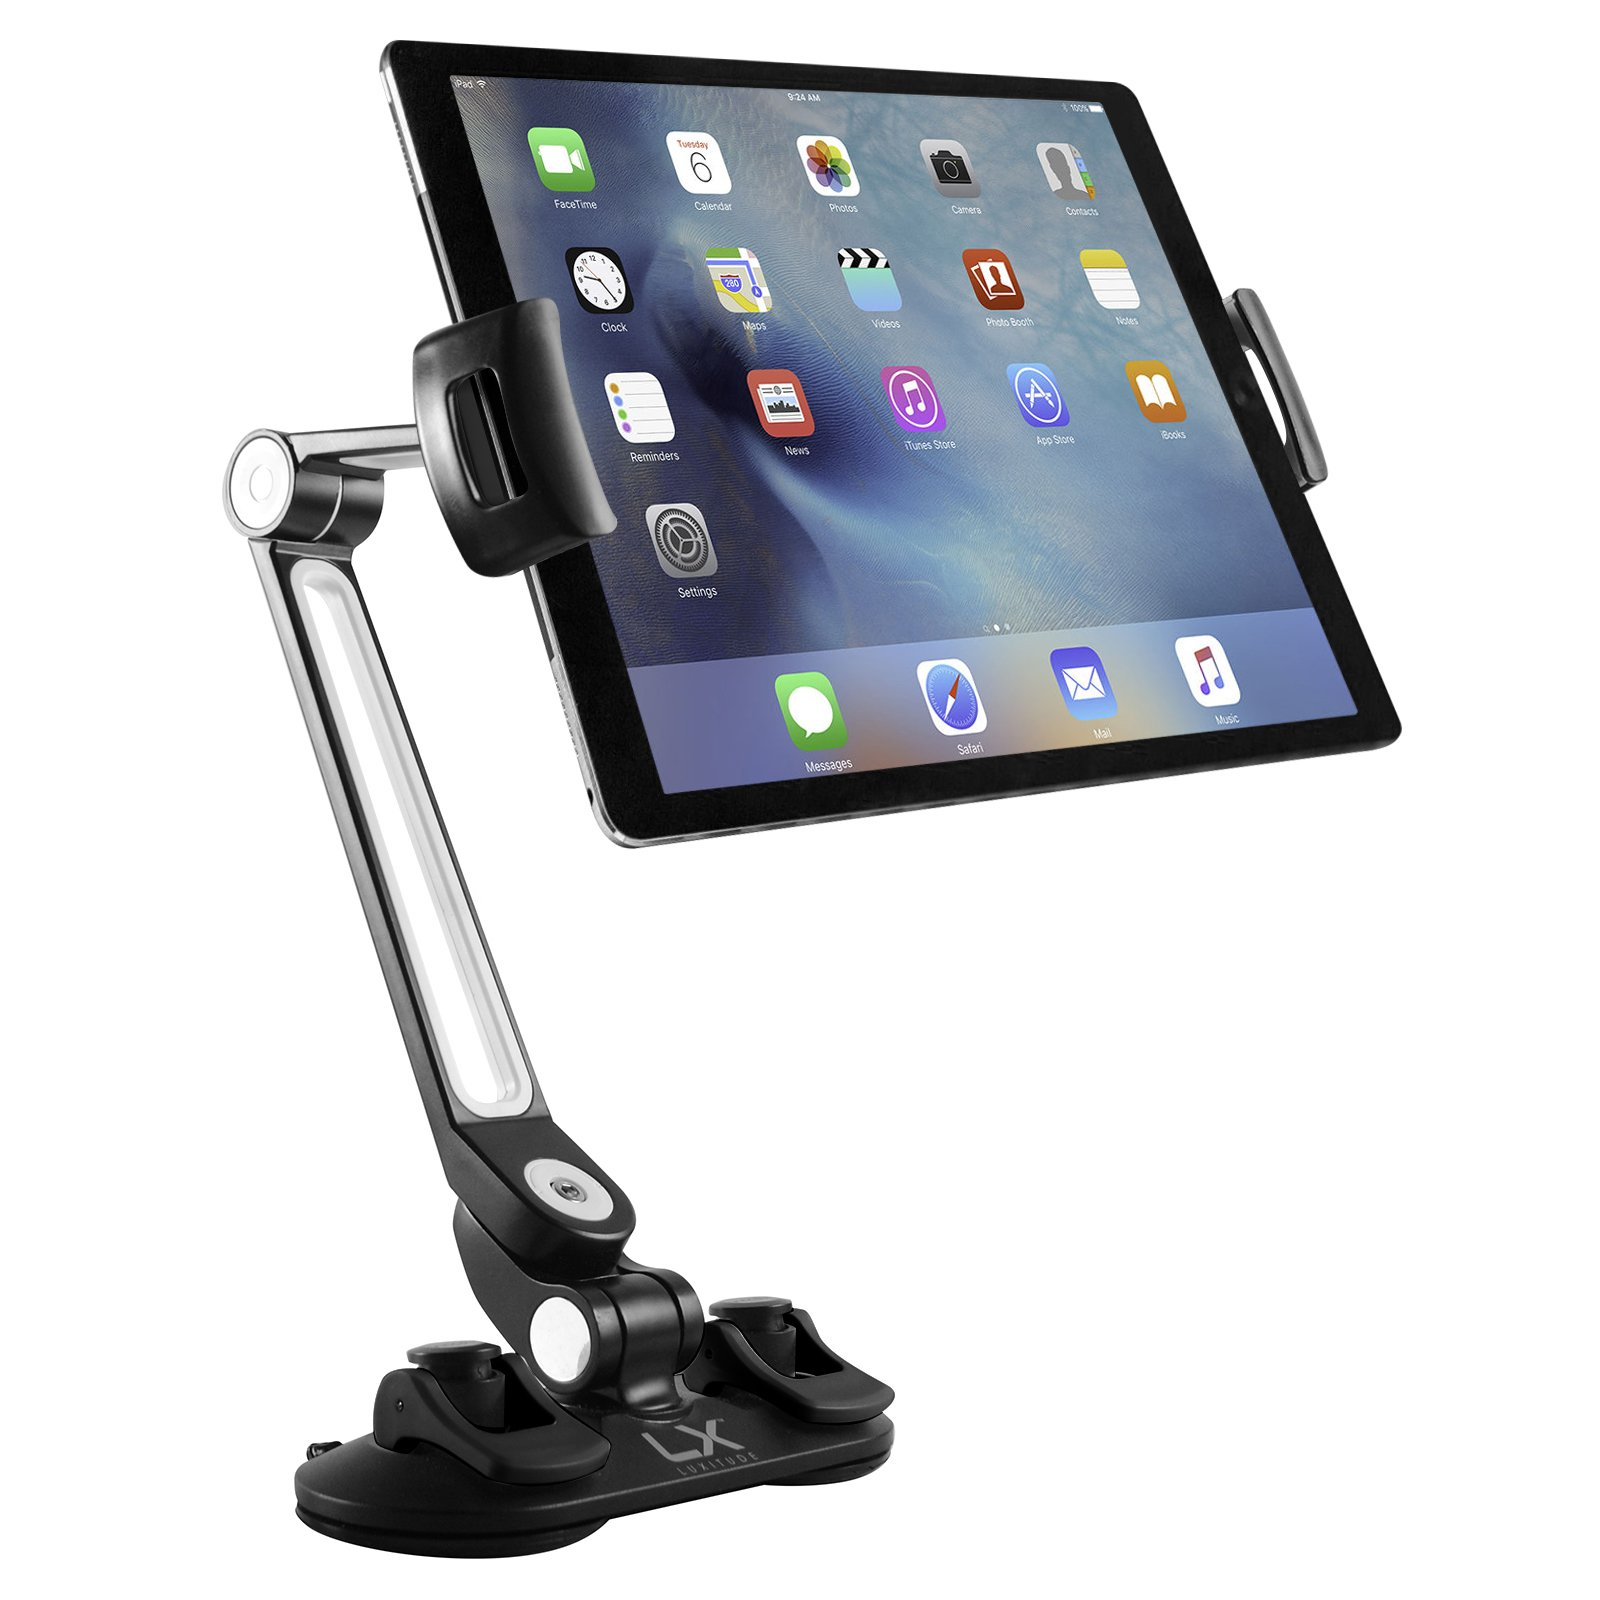 Luxitude Tablet & Phone Holder with Suction Cups & 360 Degree Full Motion, Perfect for Smart Phones, Nintendo Switch, E-Readers & Tablets, Permanent or Temporary Mounting Solution